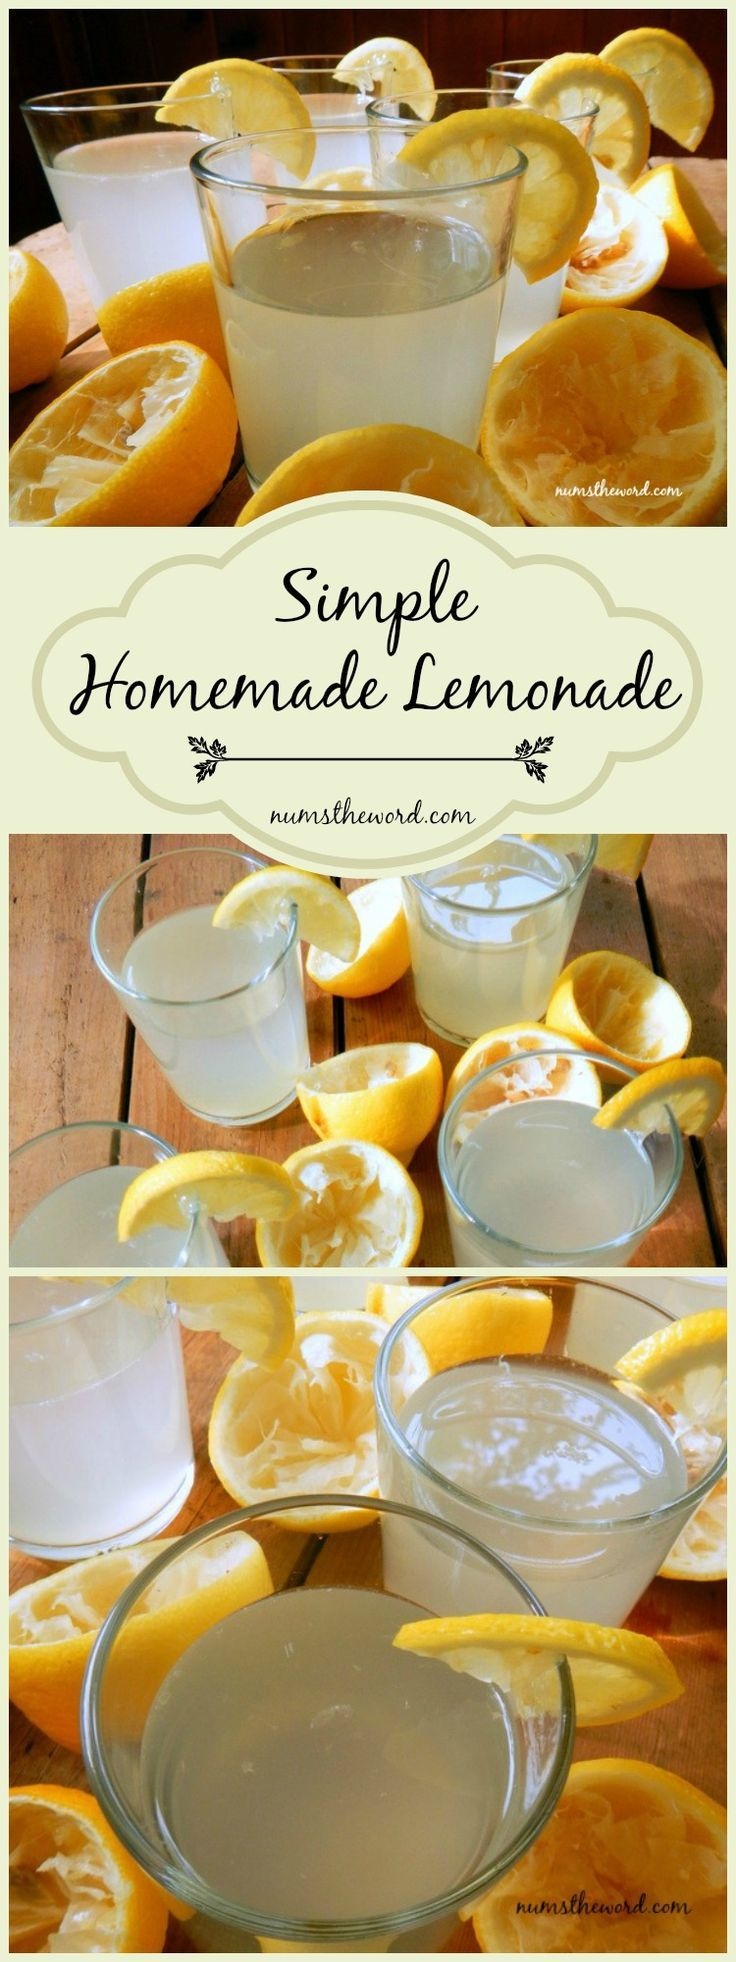 Looking for a simple homemade lemonade recipe?  This involves Fresh Squeezed Lemons, Sugar and Water.  You can't beat this old fashioned Lemonade!! Easy, delicious and our family favorite! #lemonade #homemade #lemons #drink #spring #summer #happy #sunshine #nummy #homemadelemonaderecipes